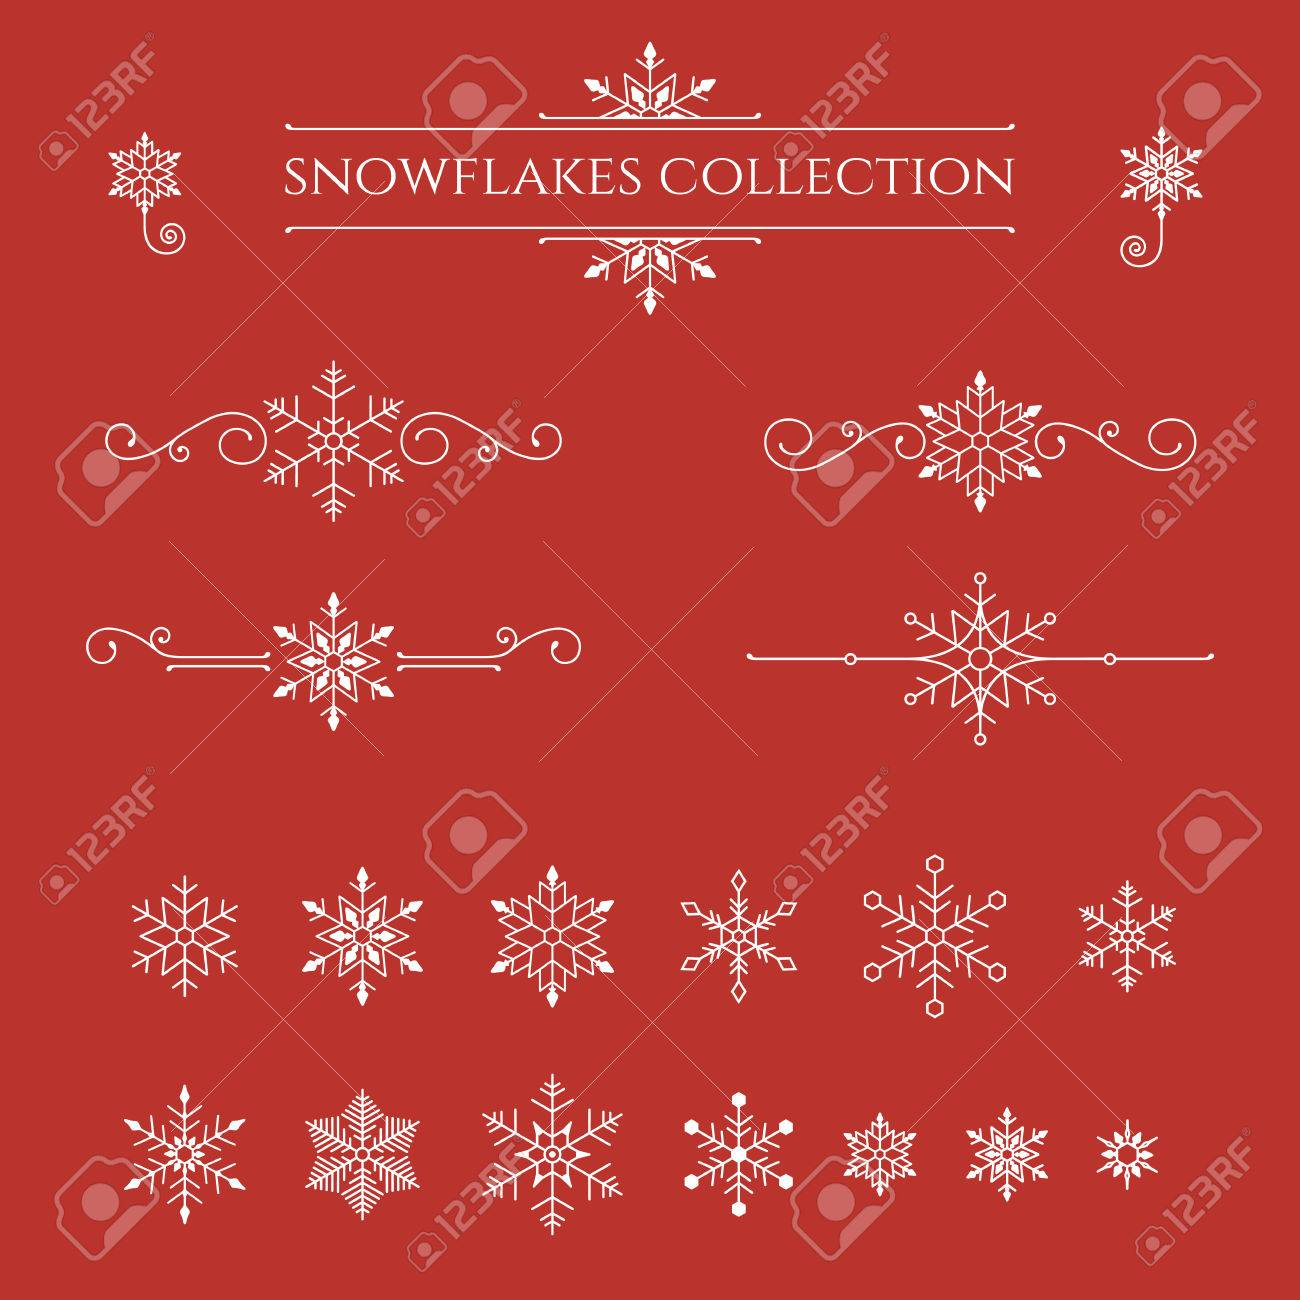 Set of snowflakes on red background. Winter decorative element. Vector illustration. - 64453721